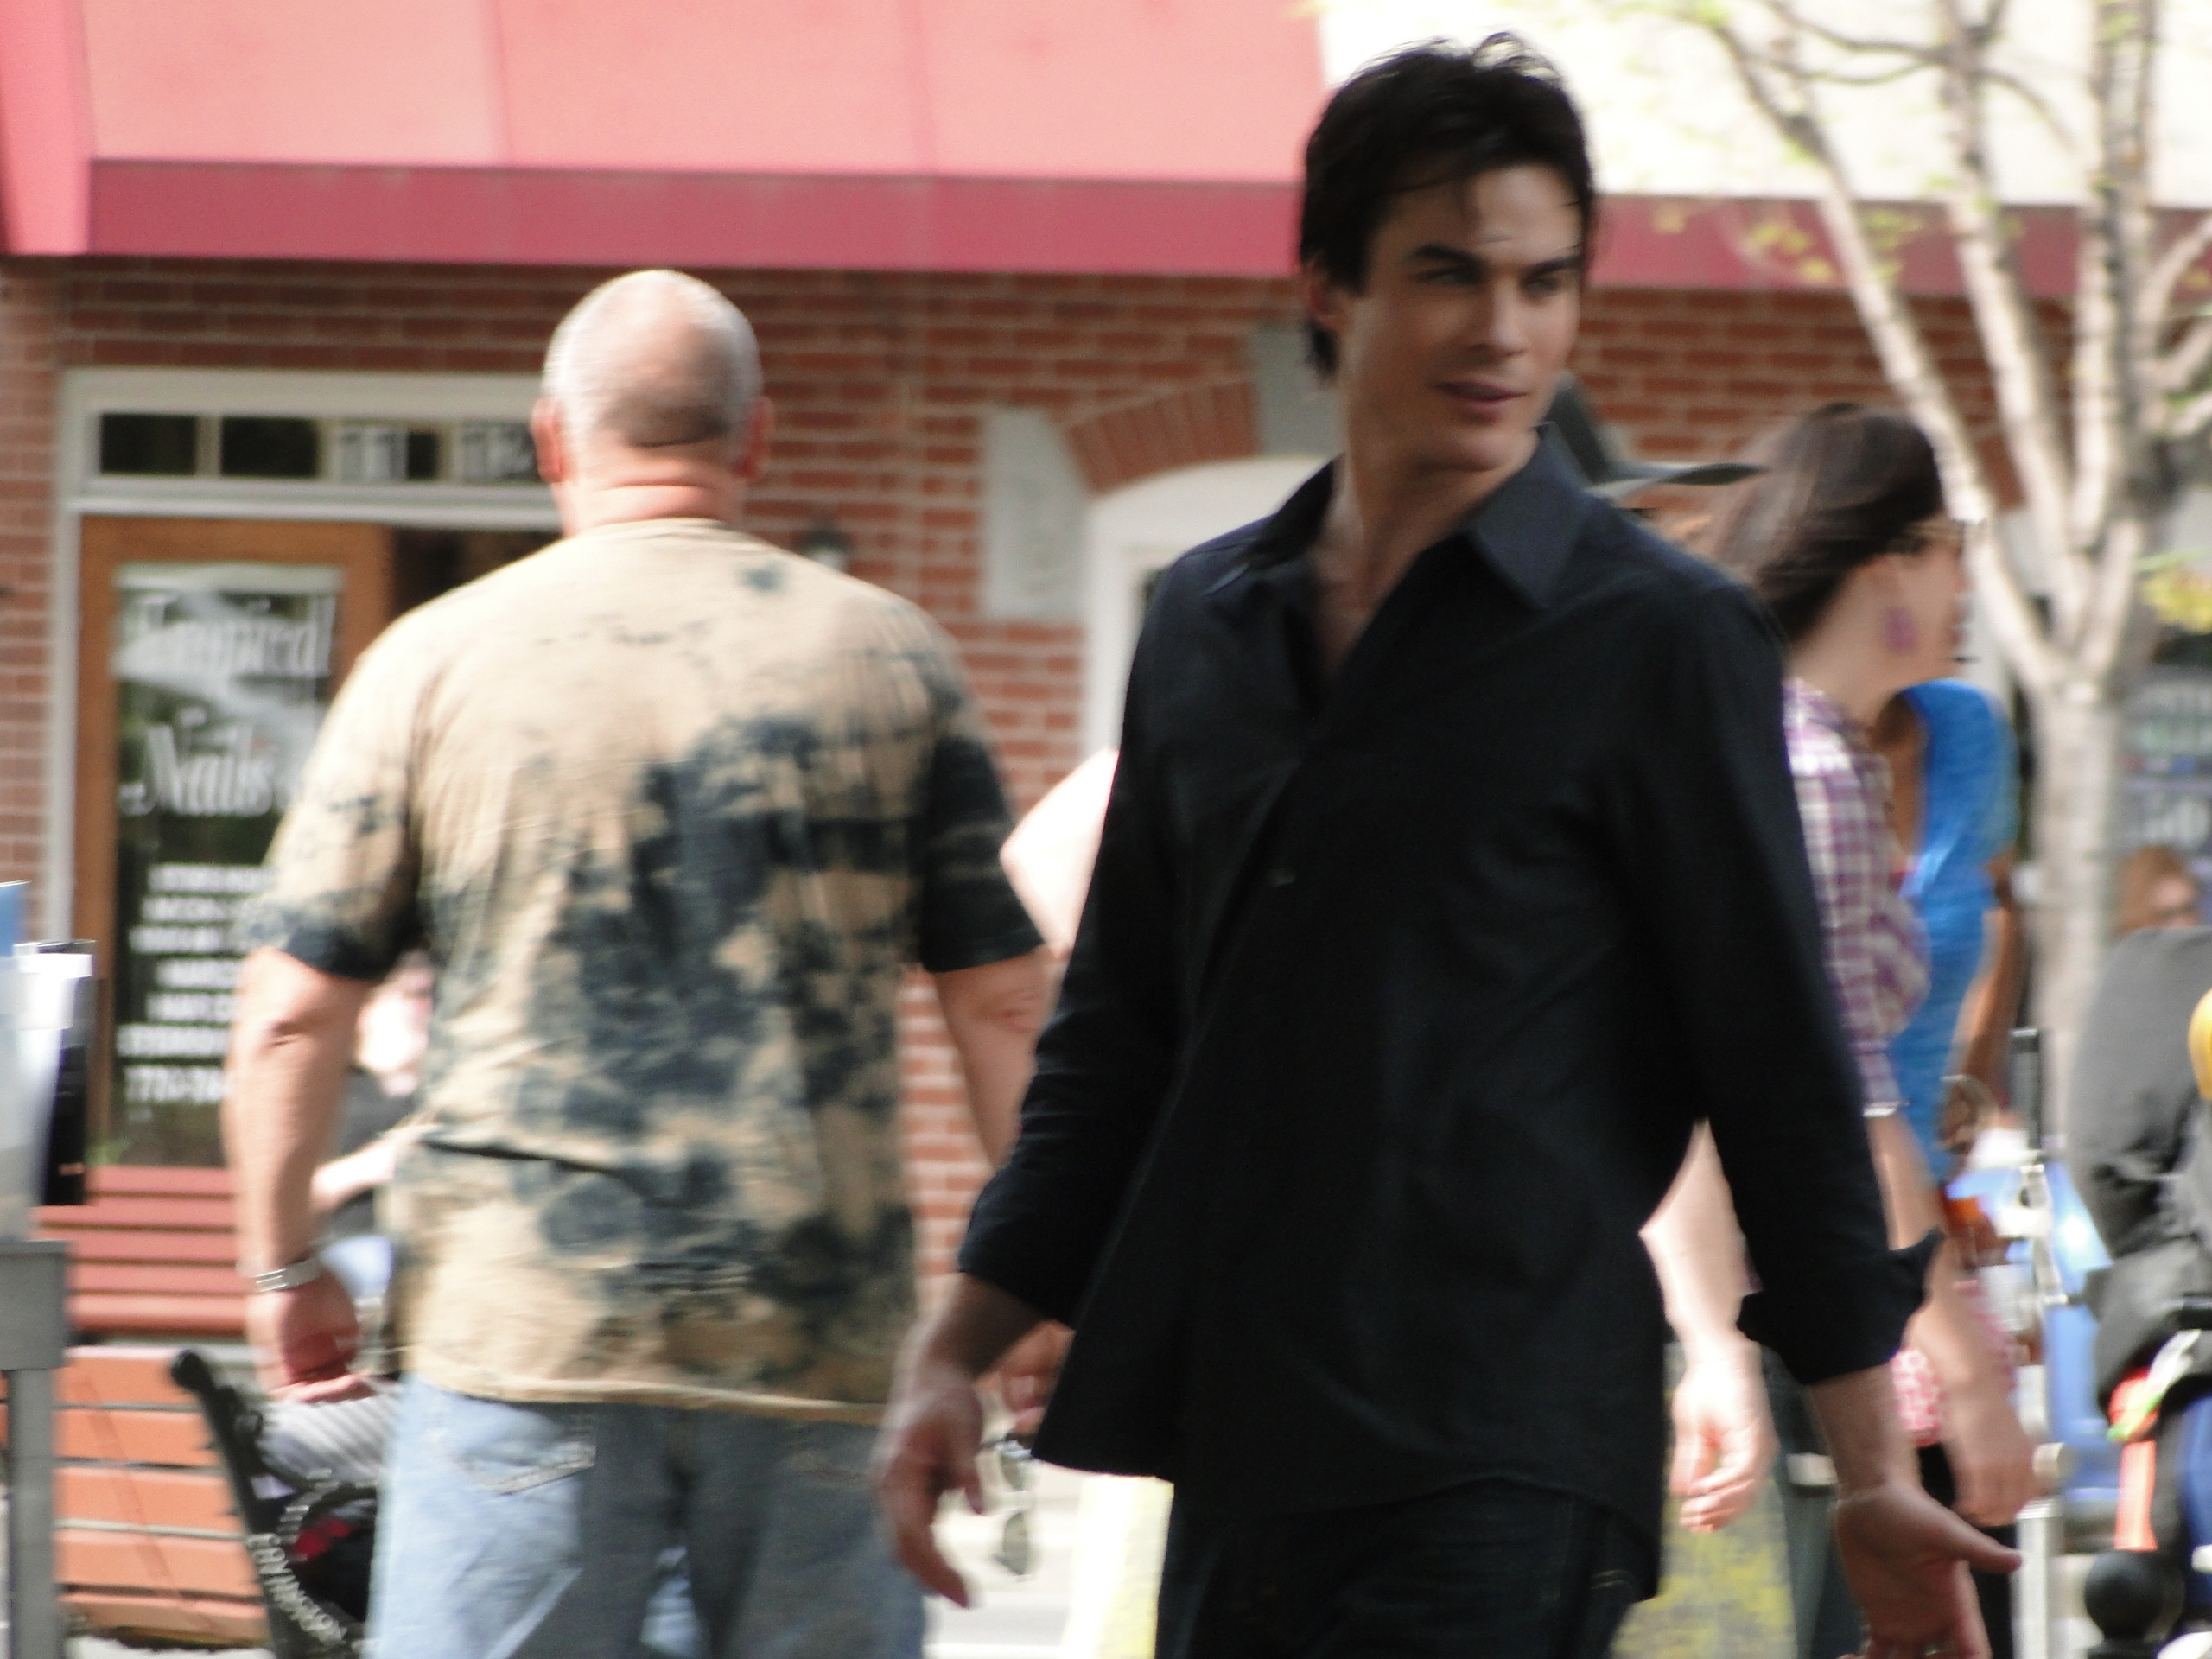 http://images2.fanpop.com/image/photos/11600000/ian-behind-scenes-the-vampire-diaries-tv-show-11699849-2560-1920.jpg